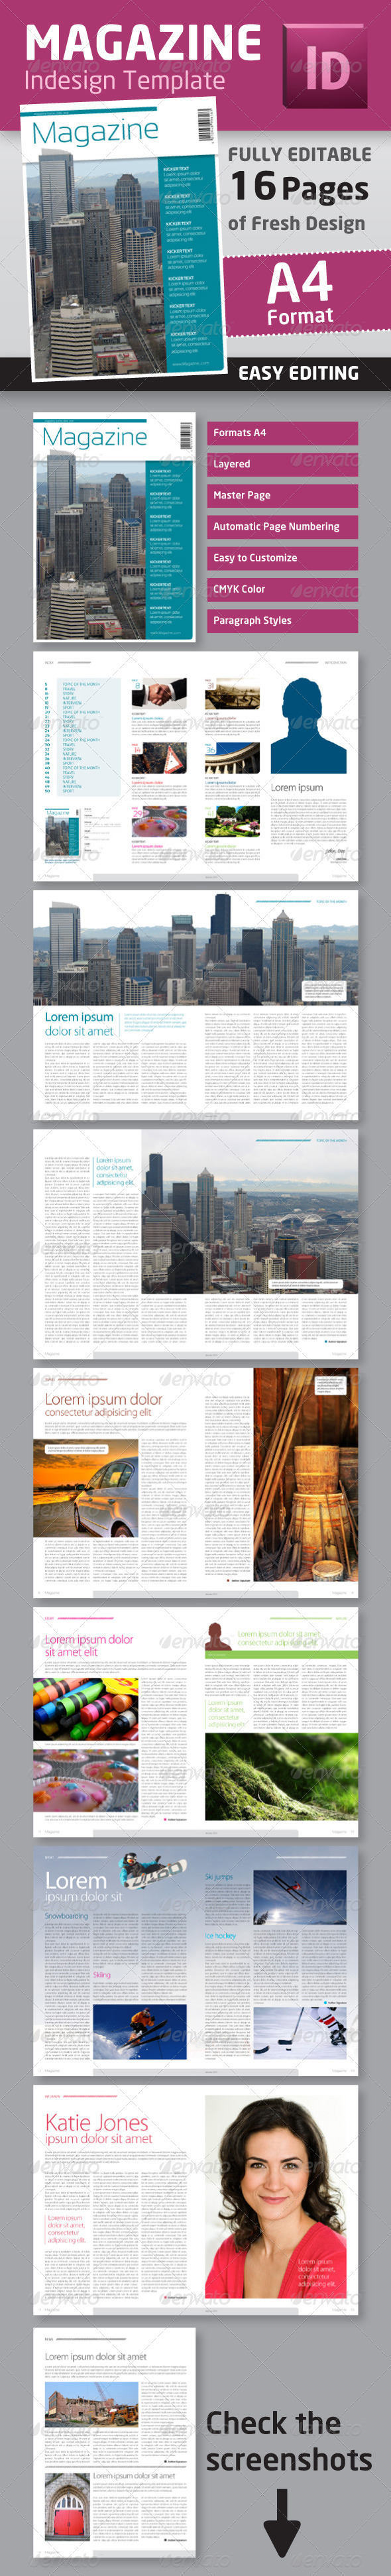 Graphic River Indesign Magazine Template in A4 Format Print Templates -  Magazines 1436727